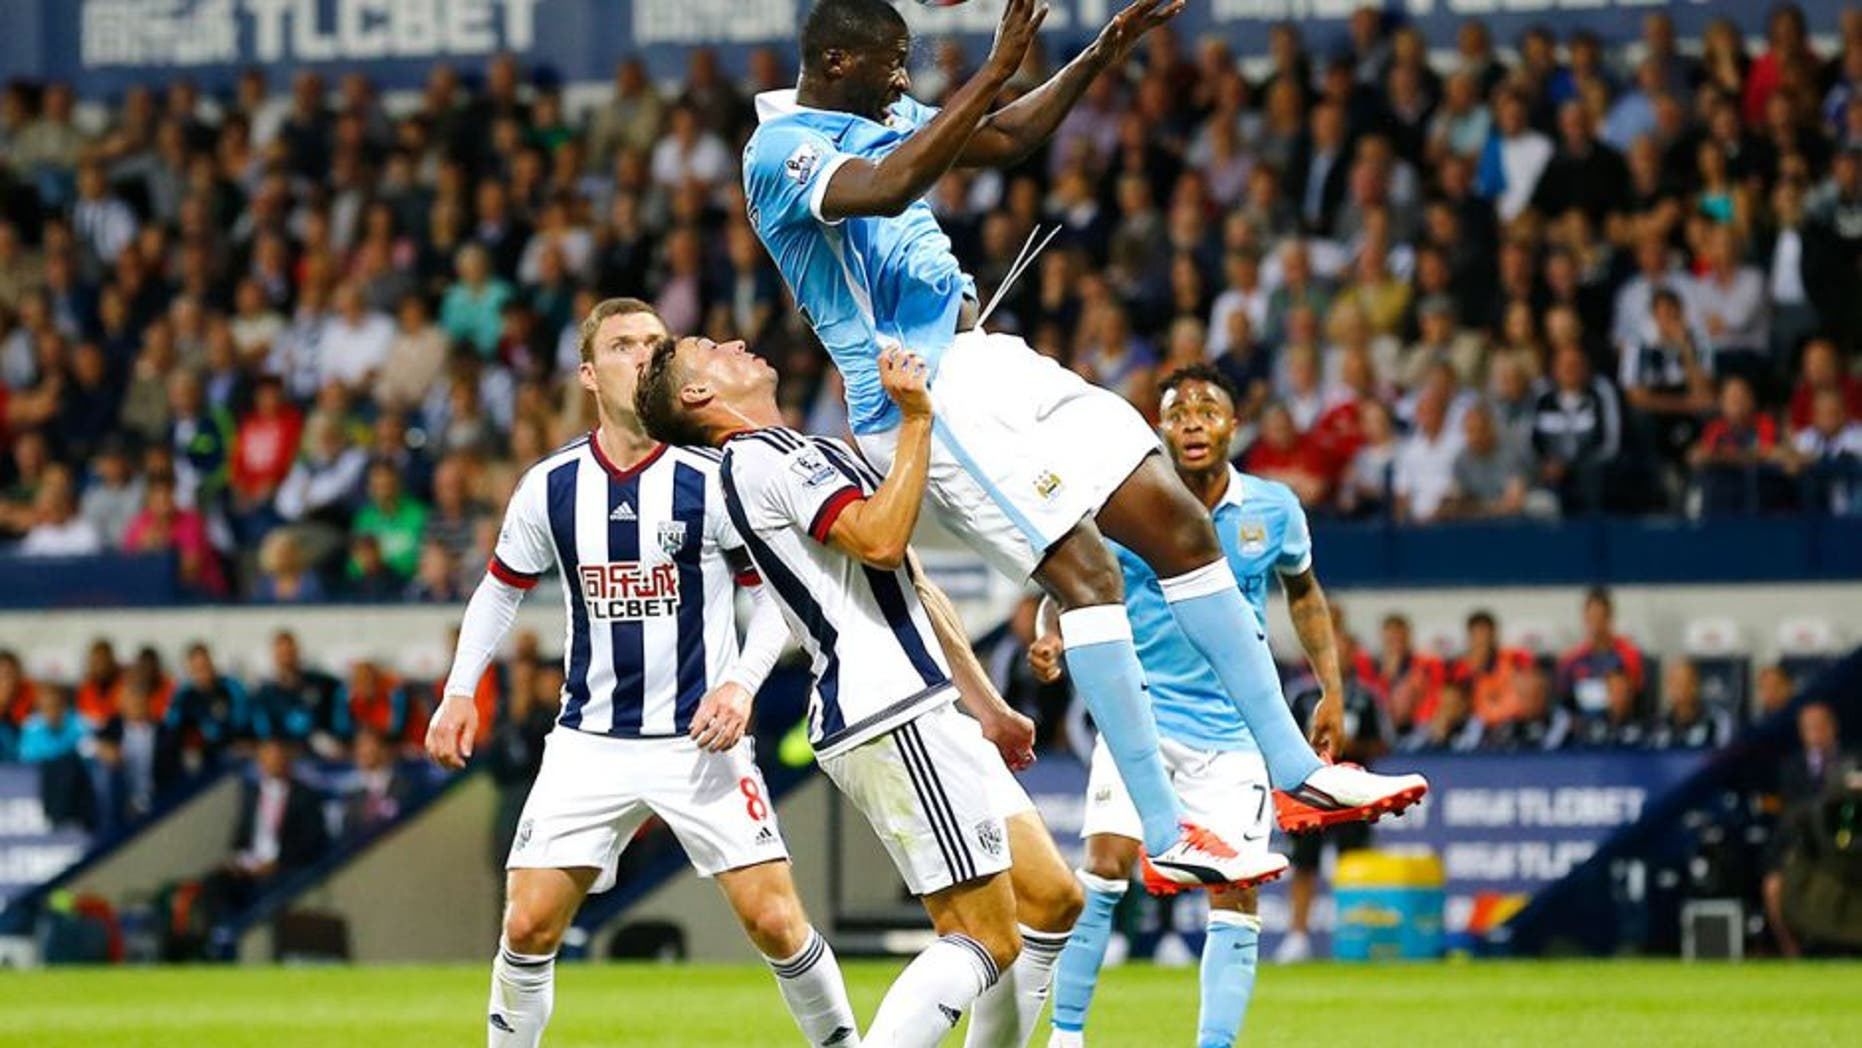 """Football - West Bromwich Albion v Manchester City - Barclays Premier League - The Hawthorns - 10/8/15 Manchester City's Yaya Toure in action with West Brom's James Chester Reuters / Darren Staples Livepic EDITORIAL USE ONLY. No use with unauthorized audio, video, data, fixture lists, club/league logos or """"live"""" services. Online in-match use limited to 45 images, no video emulation. No use in betting, games or single club/league/player publications. Please contact your account representative for further details."""